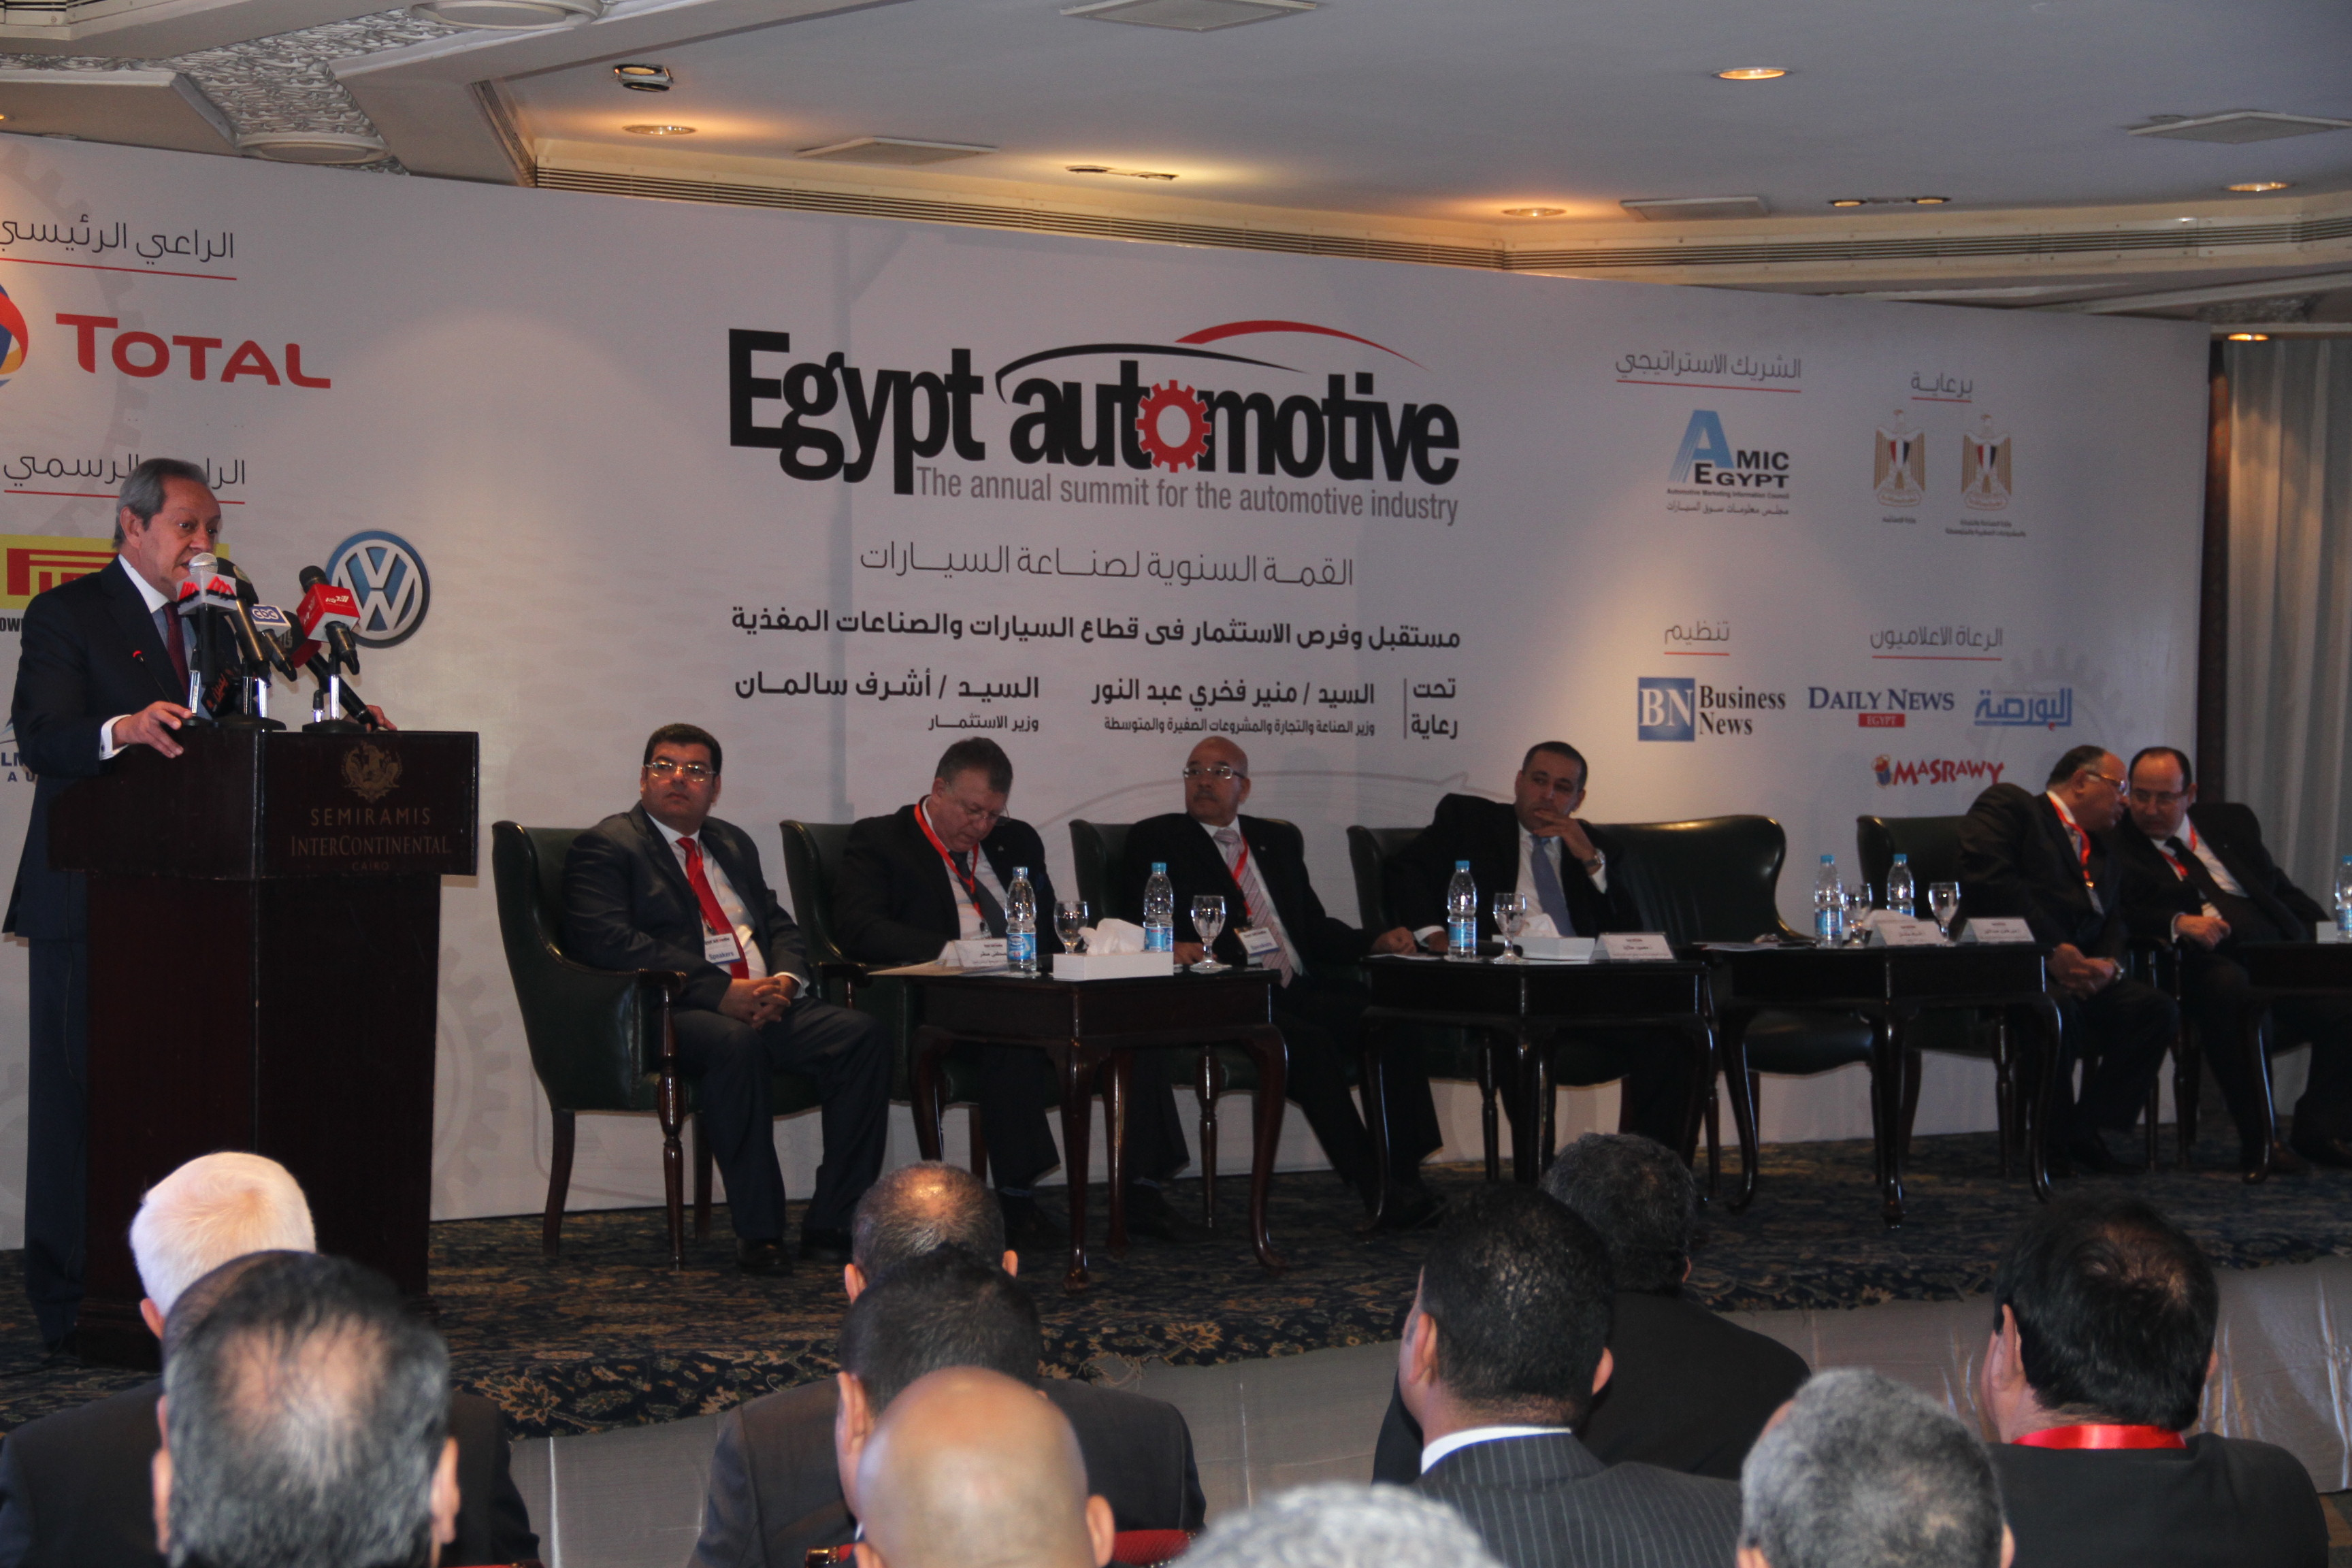 Opening session of Egypt Automotive conference  (DNE photo)